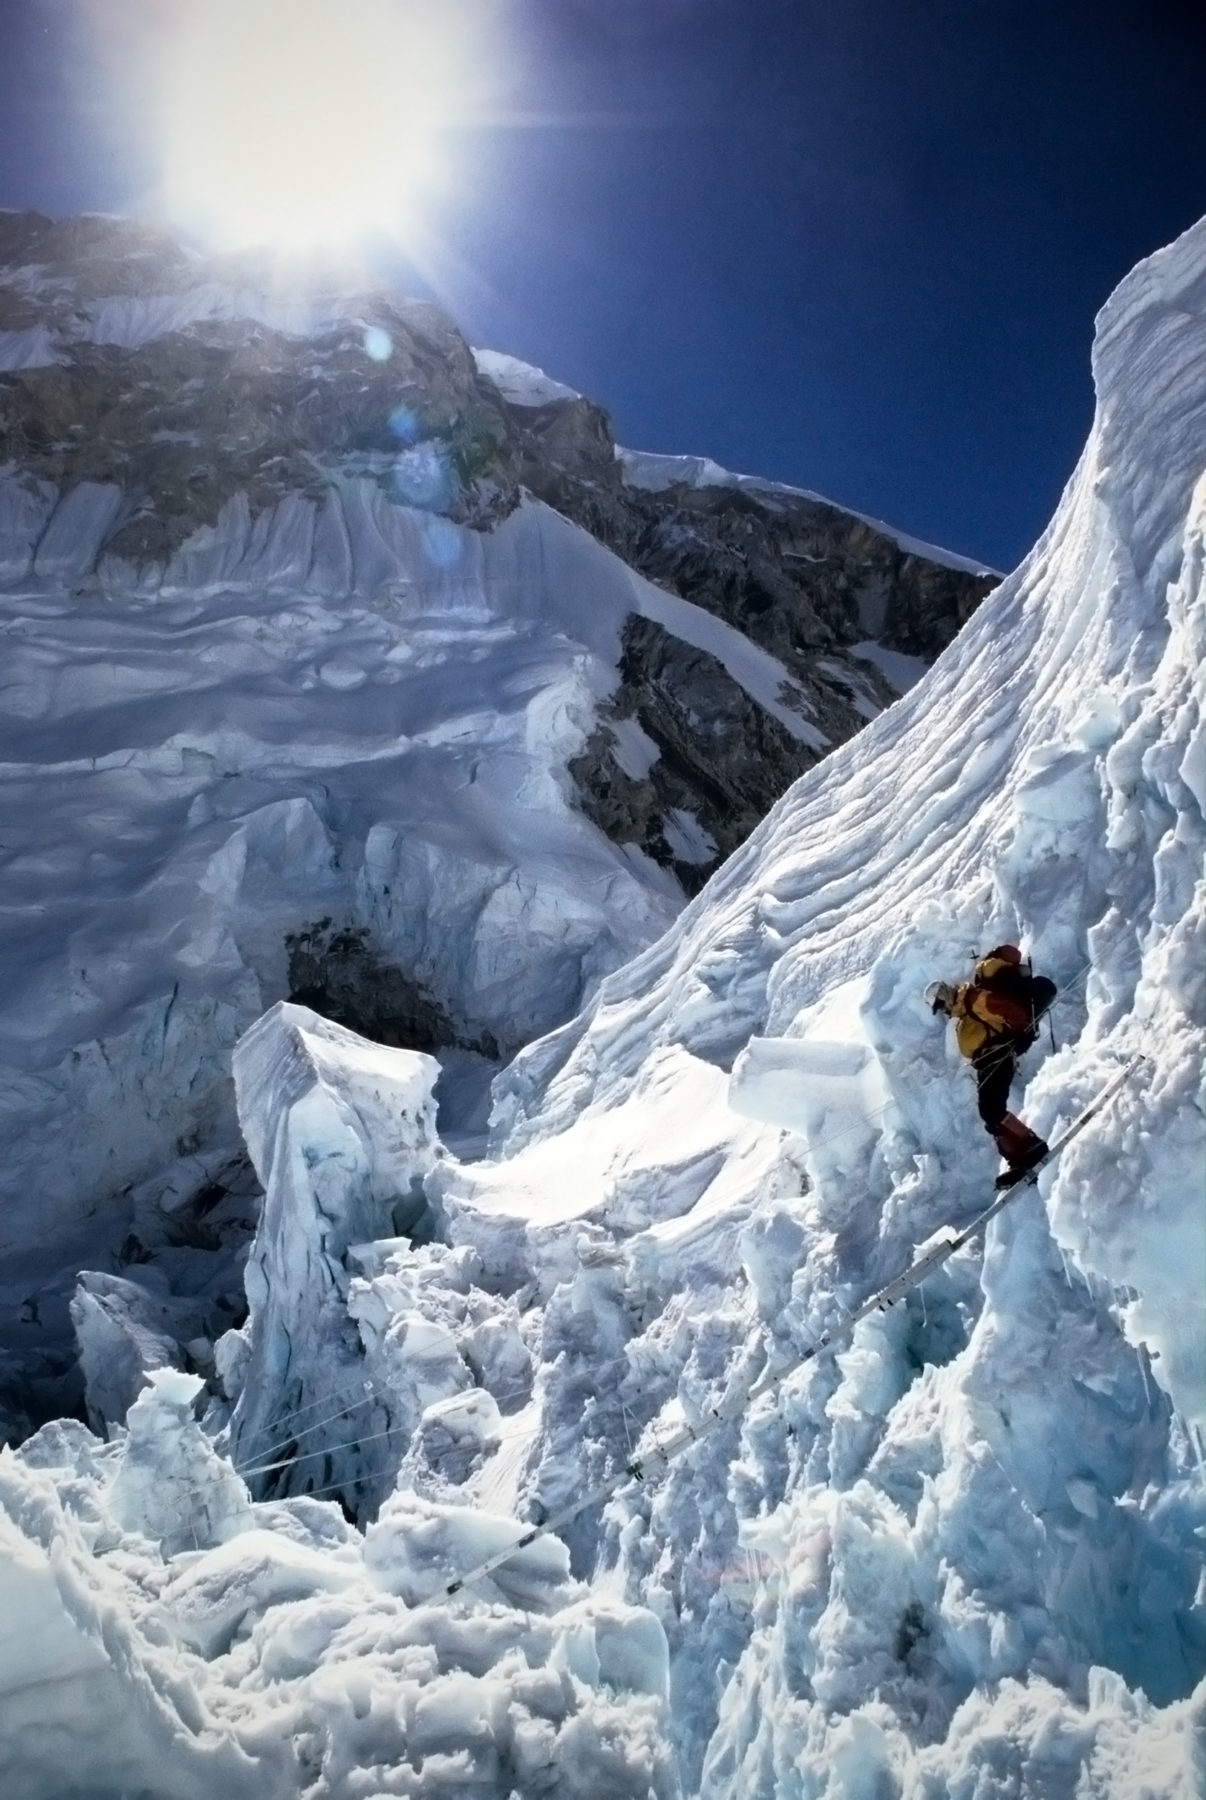 Mountaineer walking on a pole across a crevasse at a very snowy and icy Khumbu Icefall